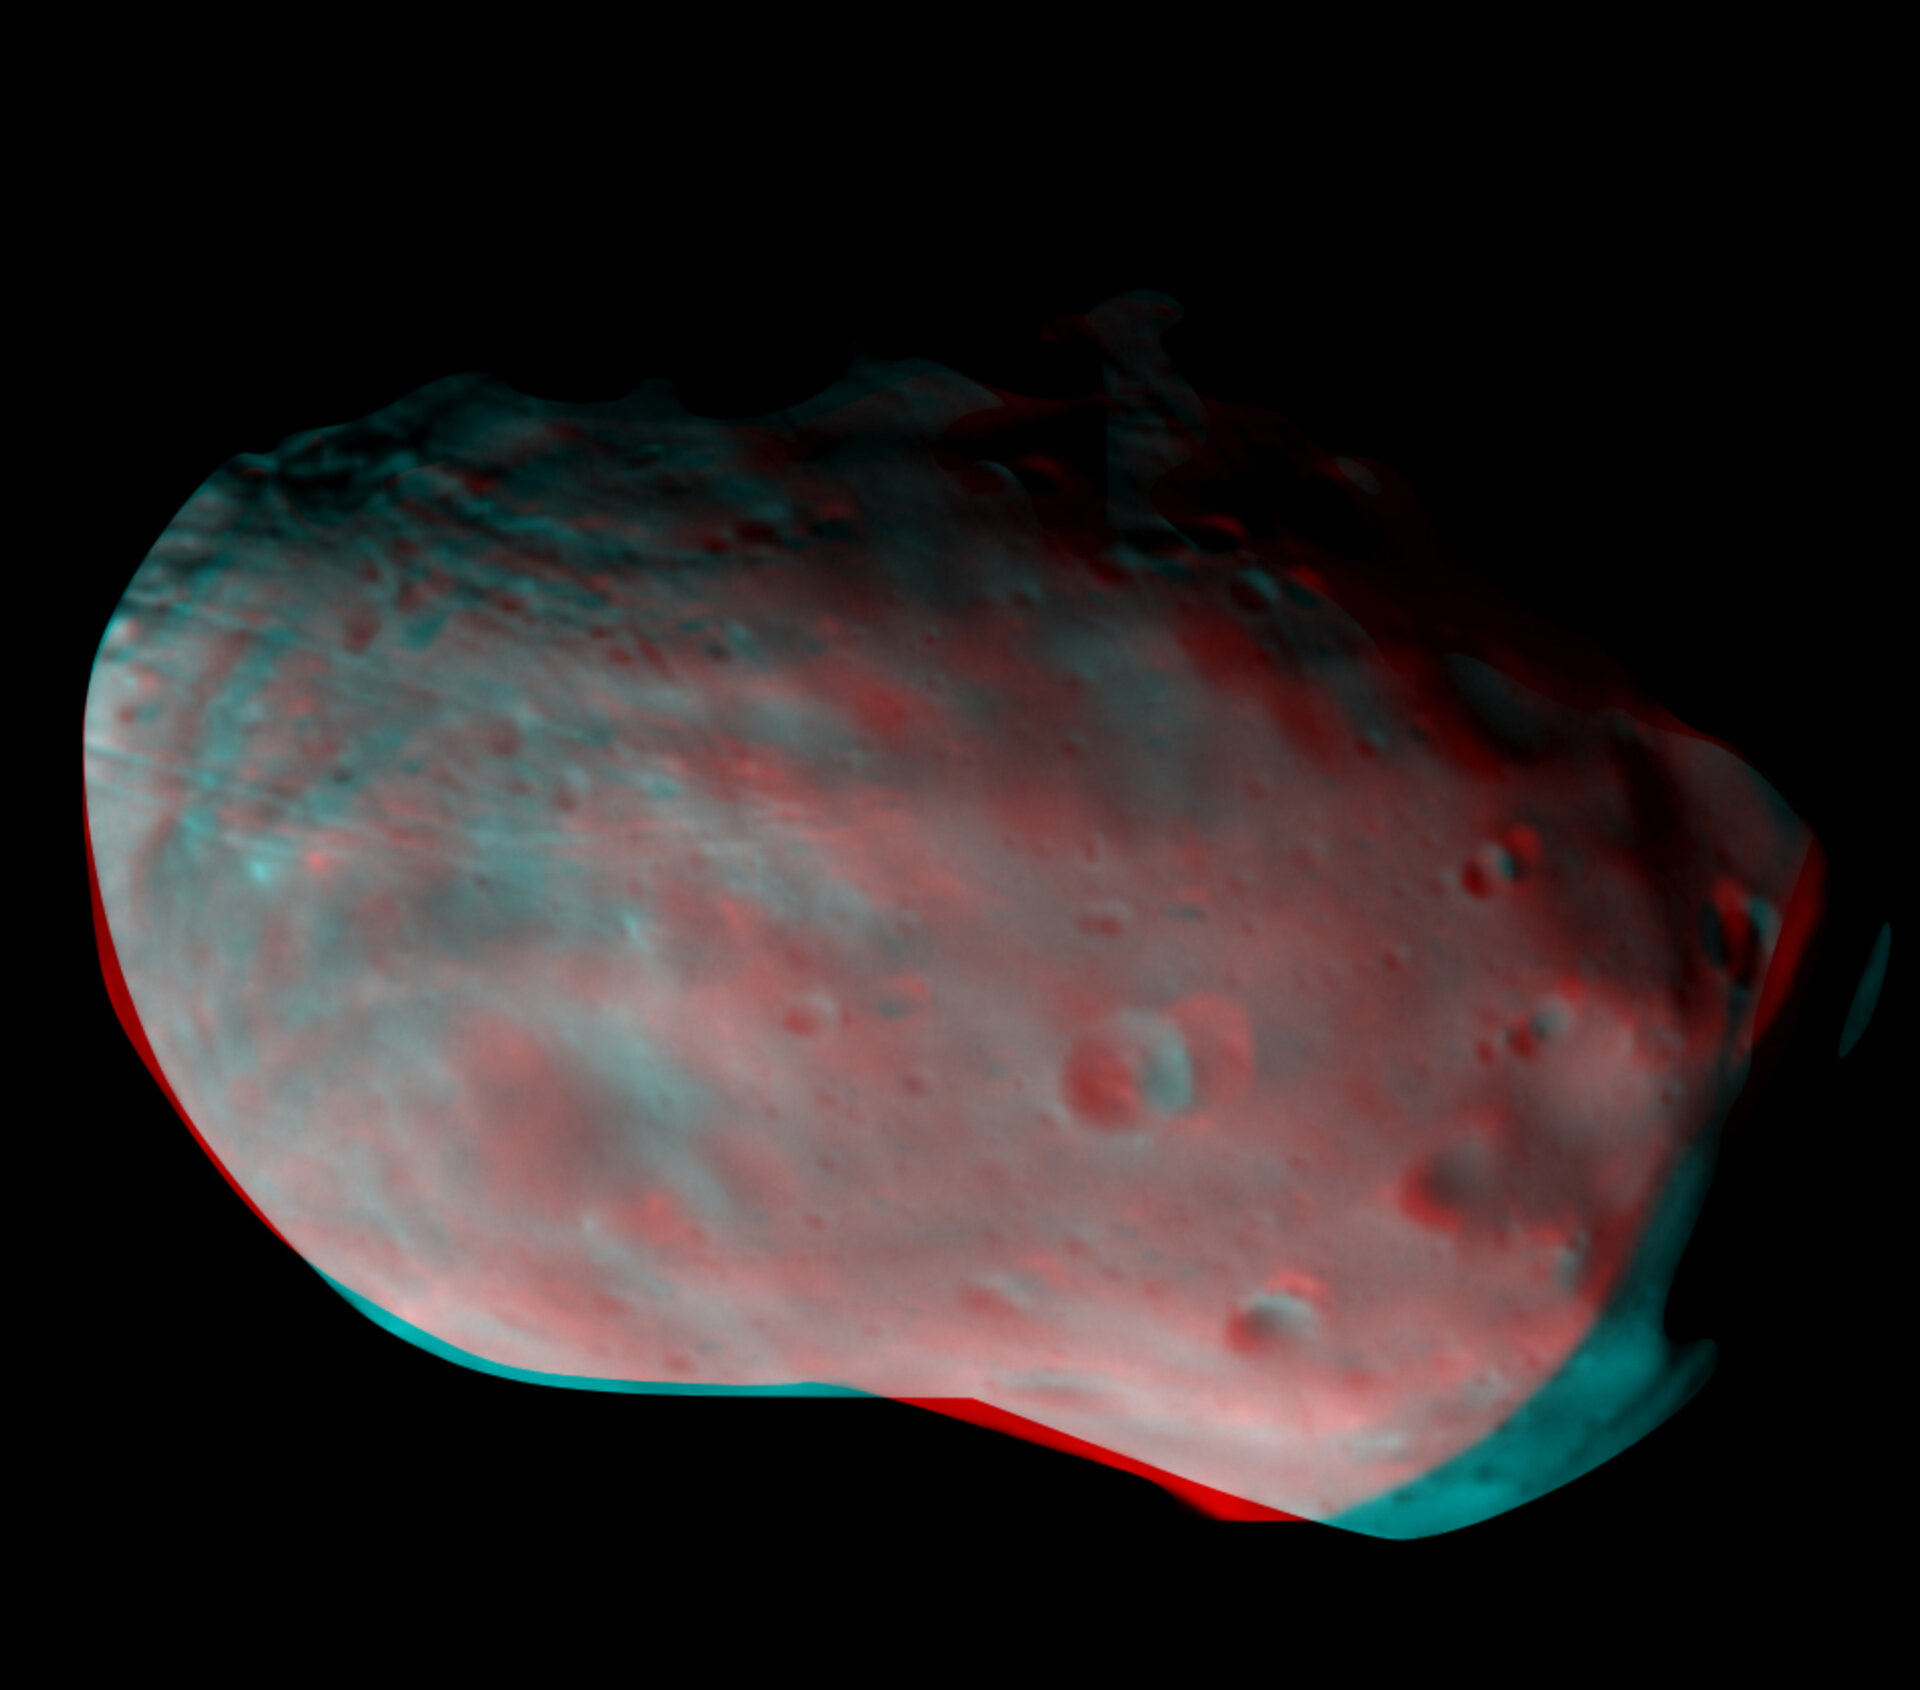 ExoMars captures Phobos in 3D, CC BY-SA 3.0 IGO